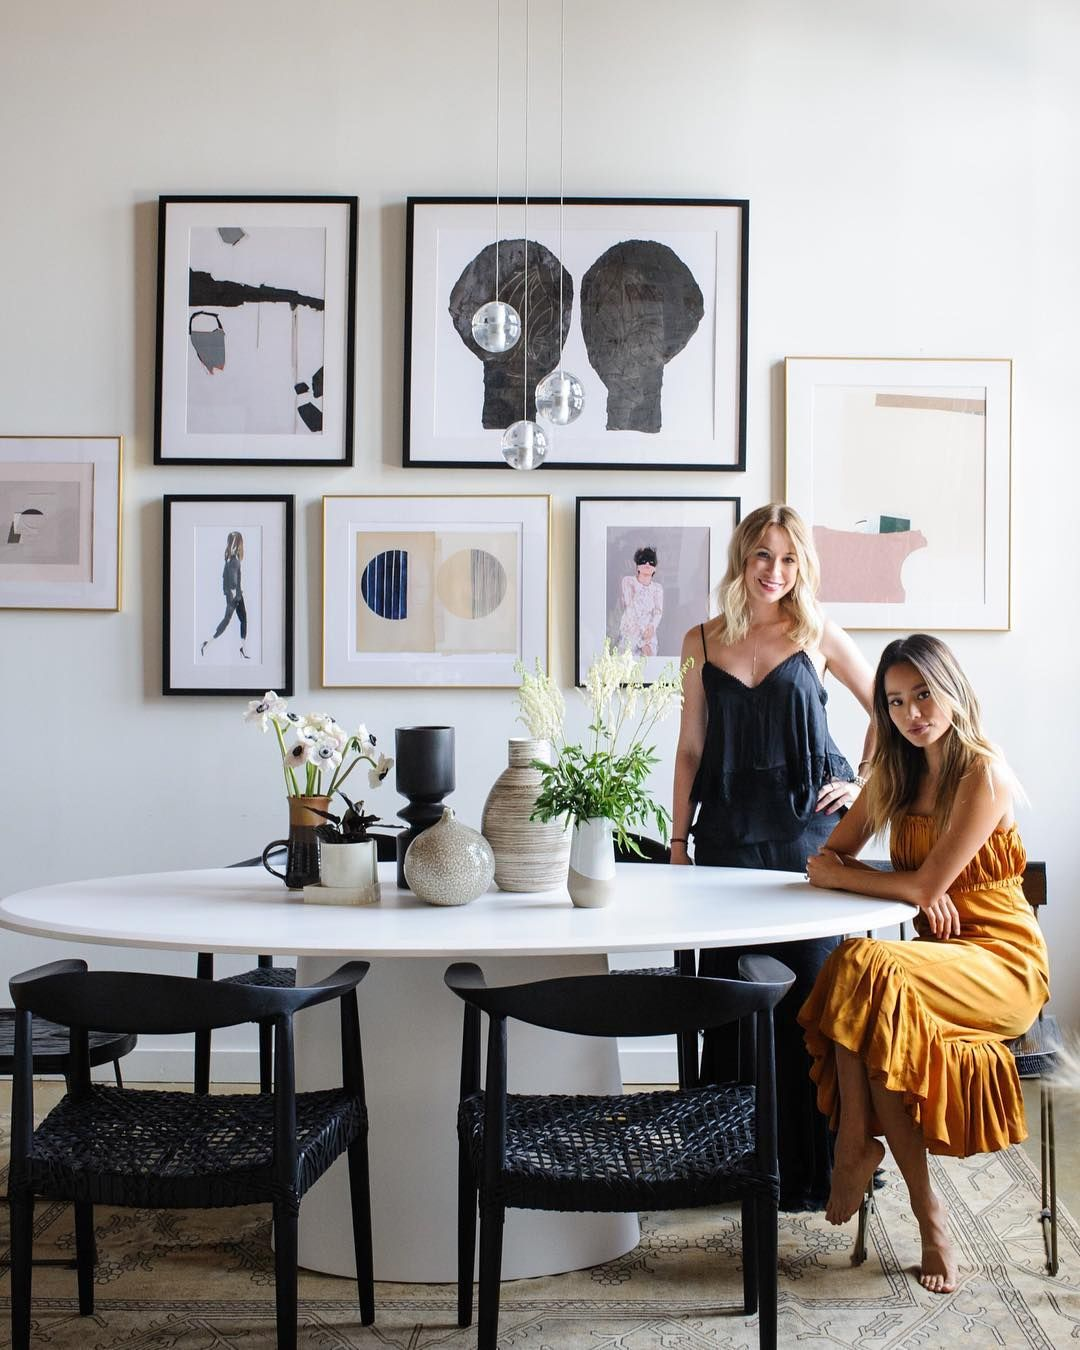 Bed Bath Beyond On Instagram We Re All For Jamiejchung S Charming New Condo Design We Tea Dining Room Design Modern Condo Decorating Dining Room Glam